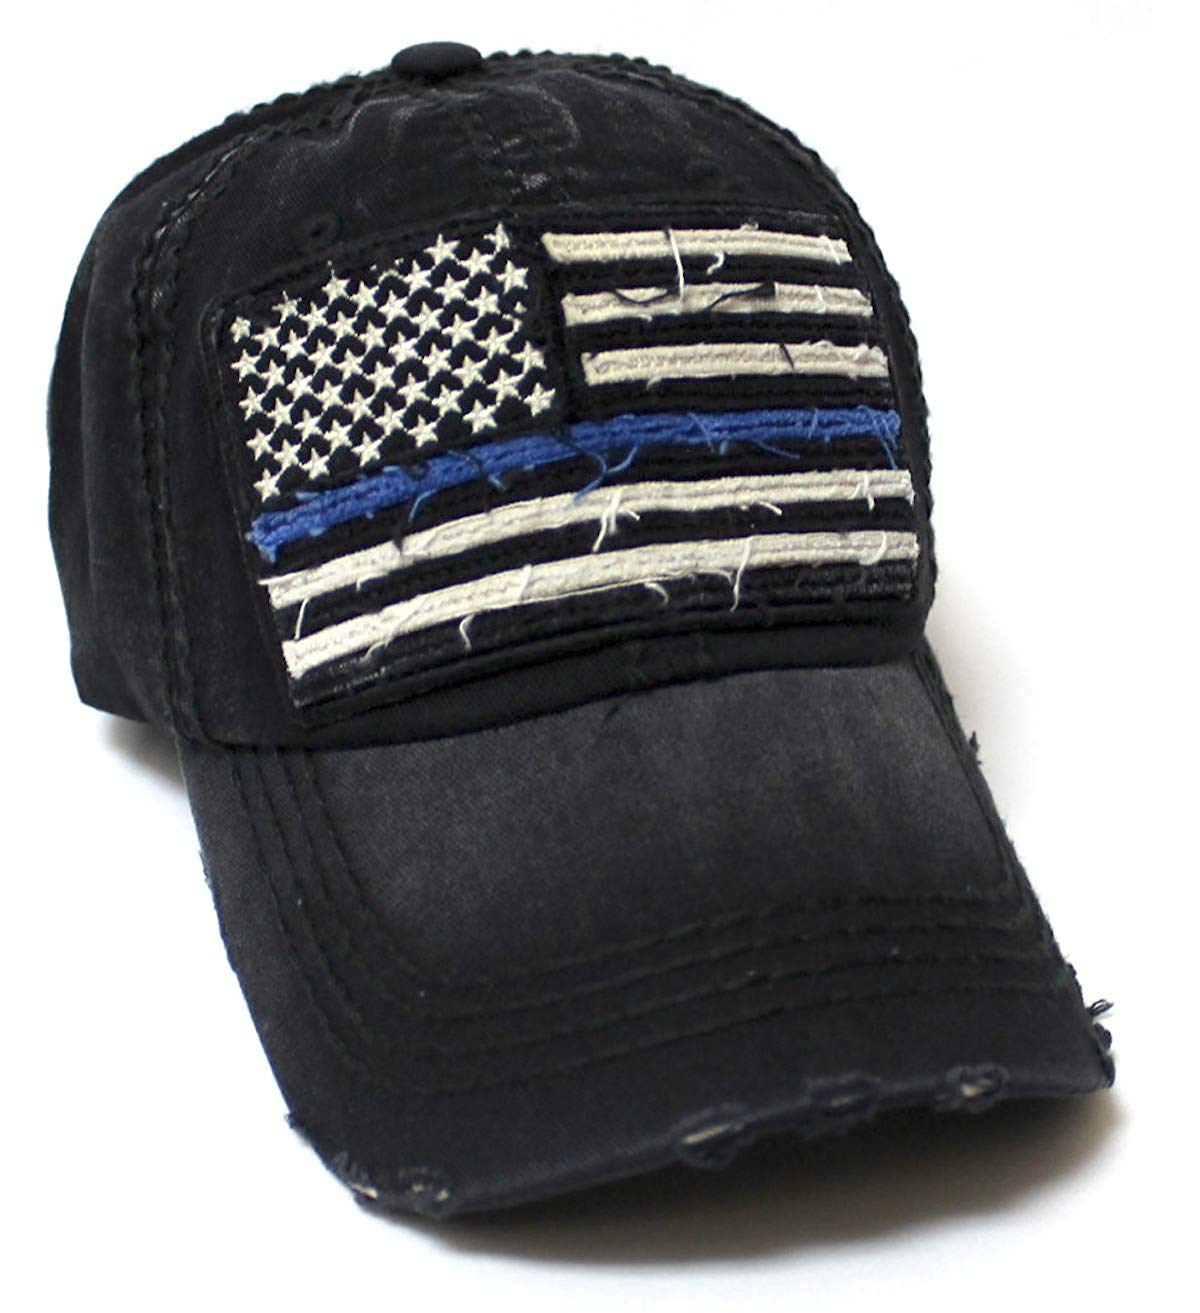 Classic Ballcap Blue Line Patriotic USA Police Department Memorial American Flag Vintage Hat, Black - Caps 'N Vintage